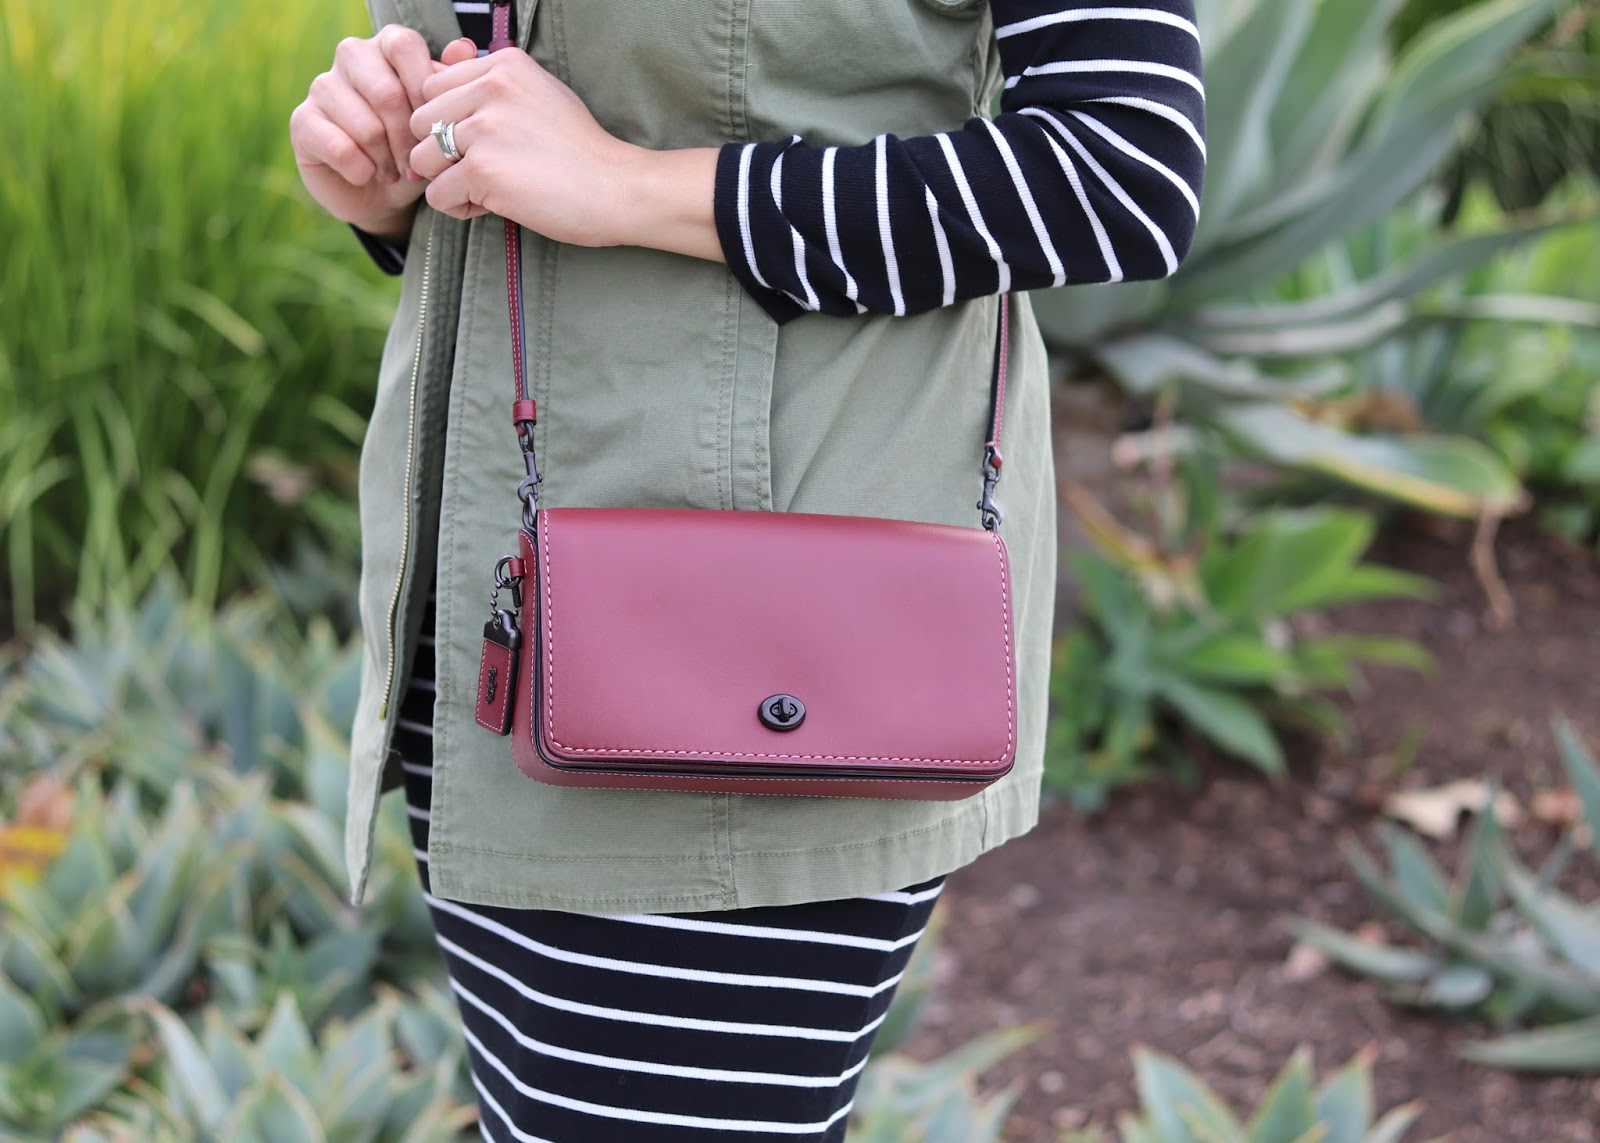 Coach Dinky Crossbody, burgundy purse, coach purse blogger